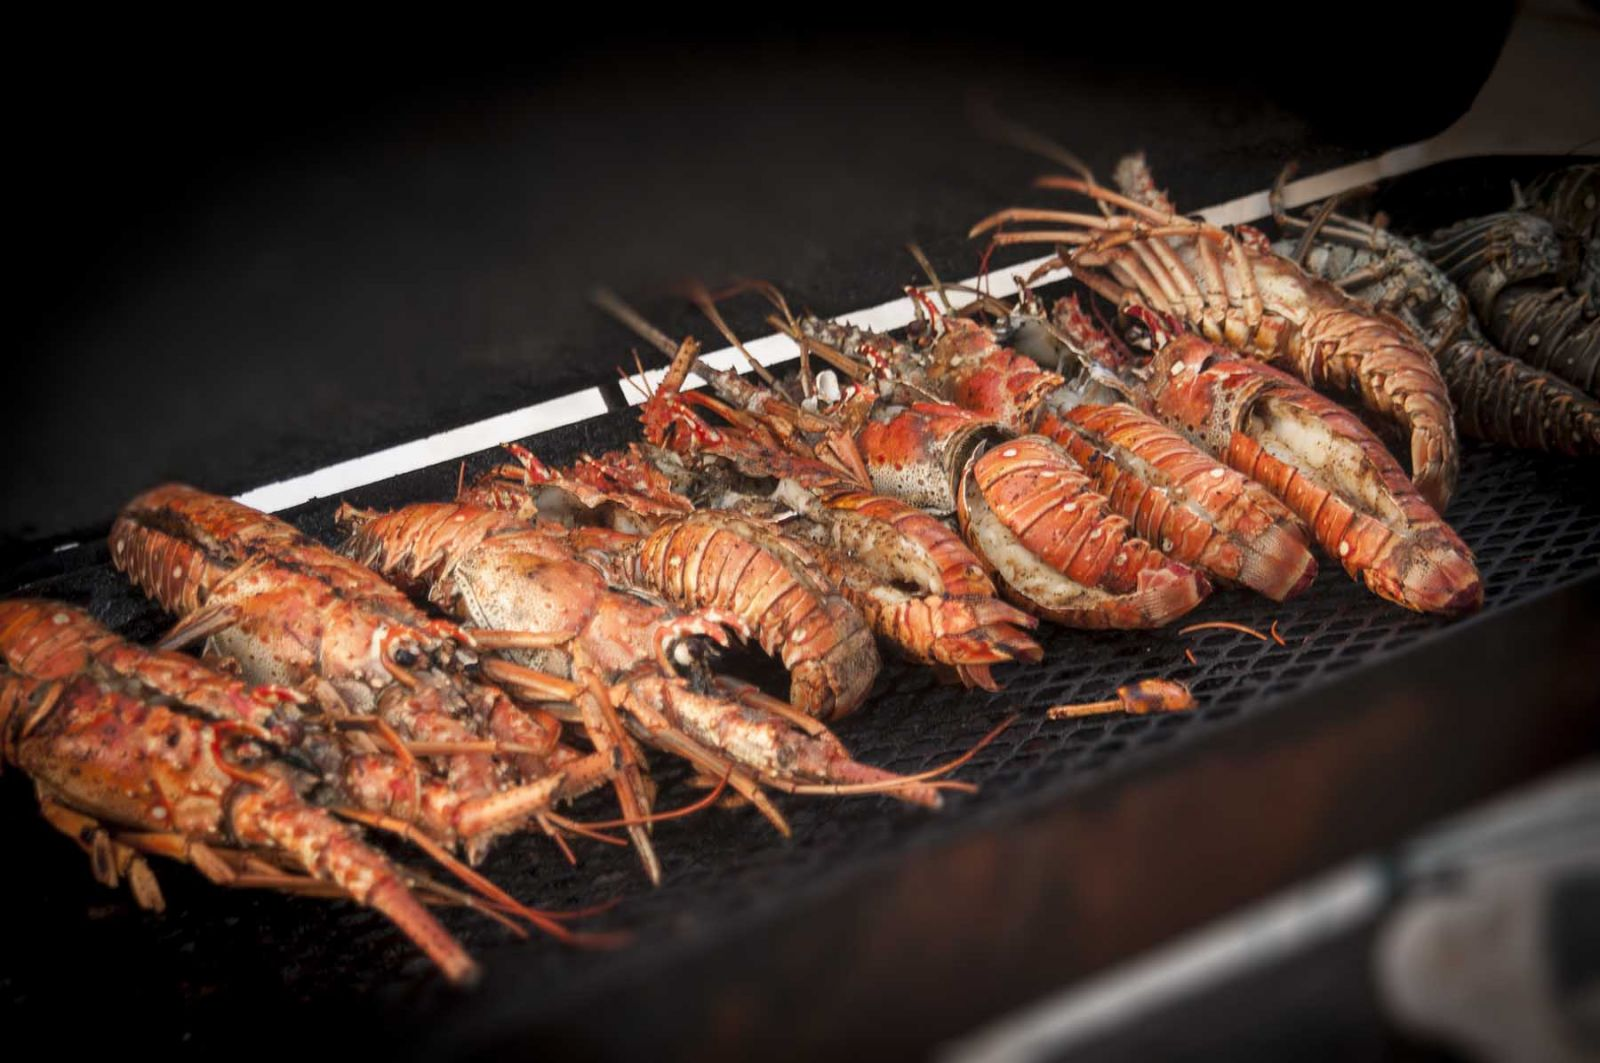 Seafood on Grill at Destin Seafood Festival